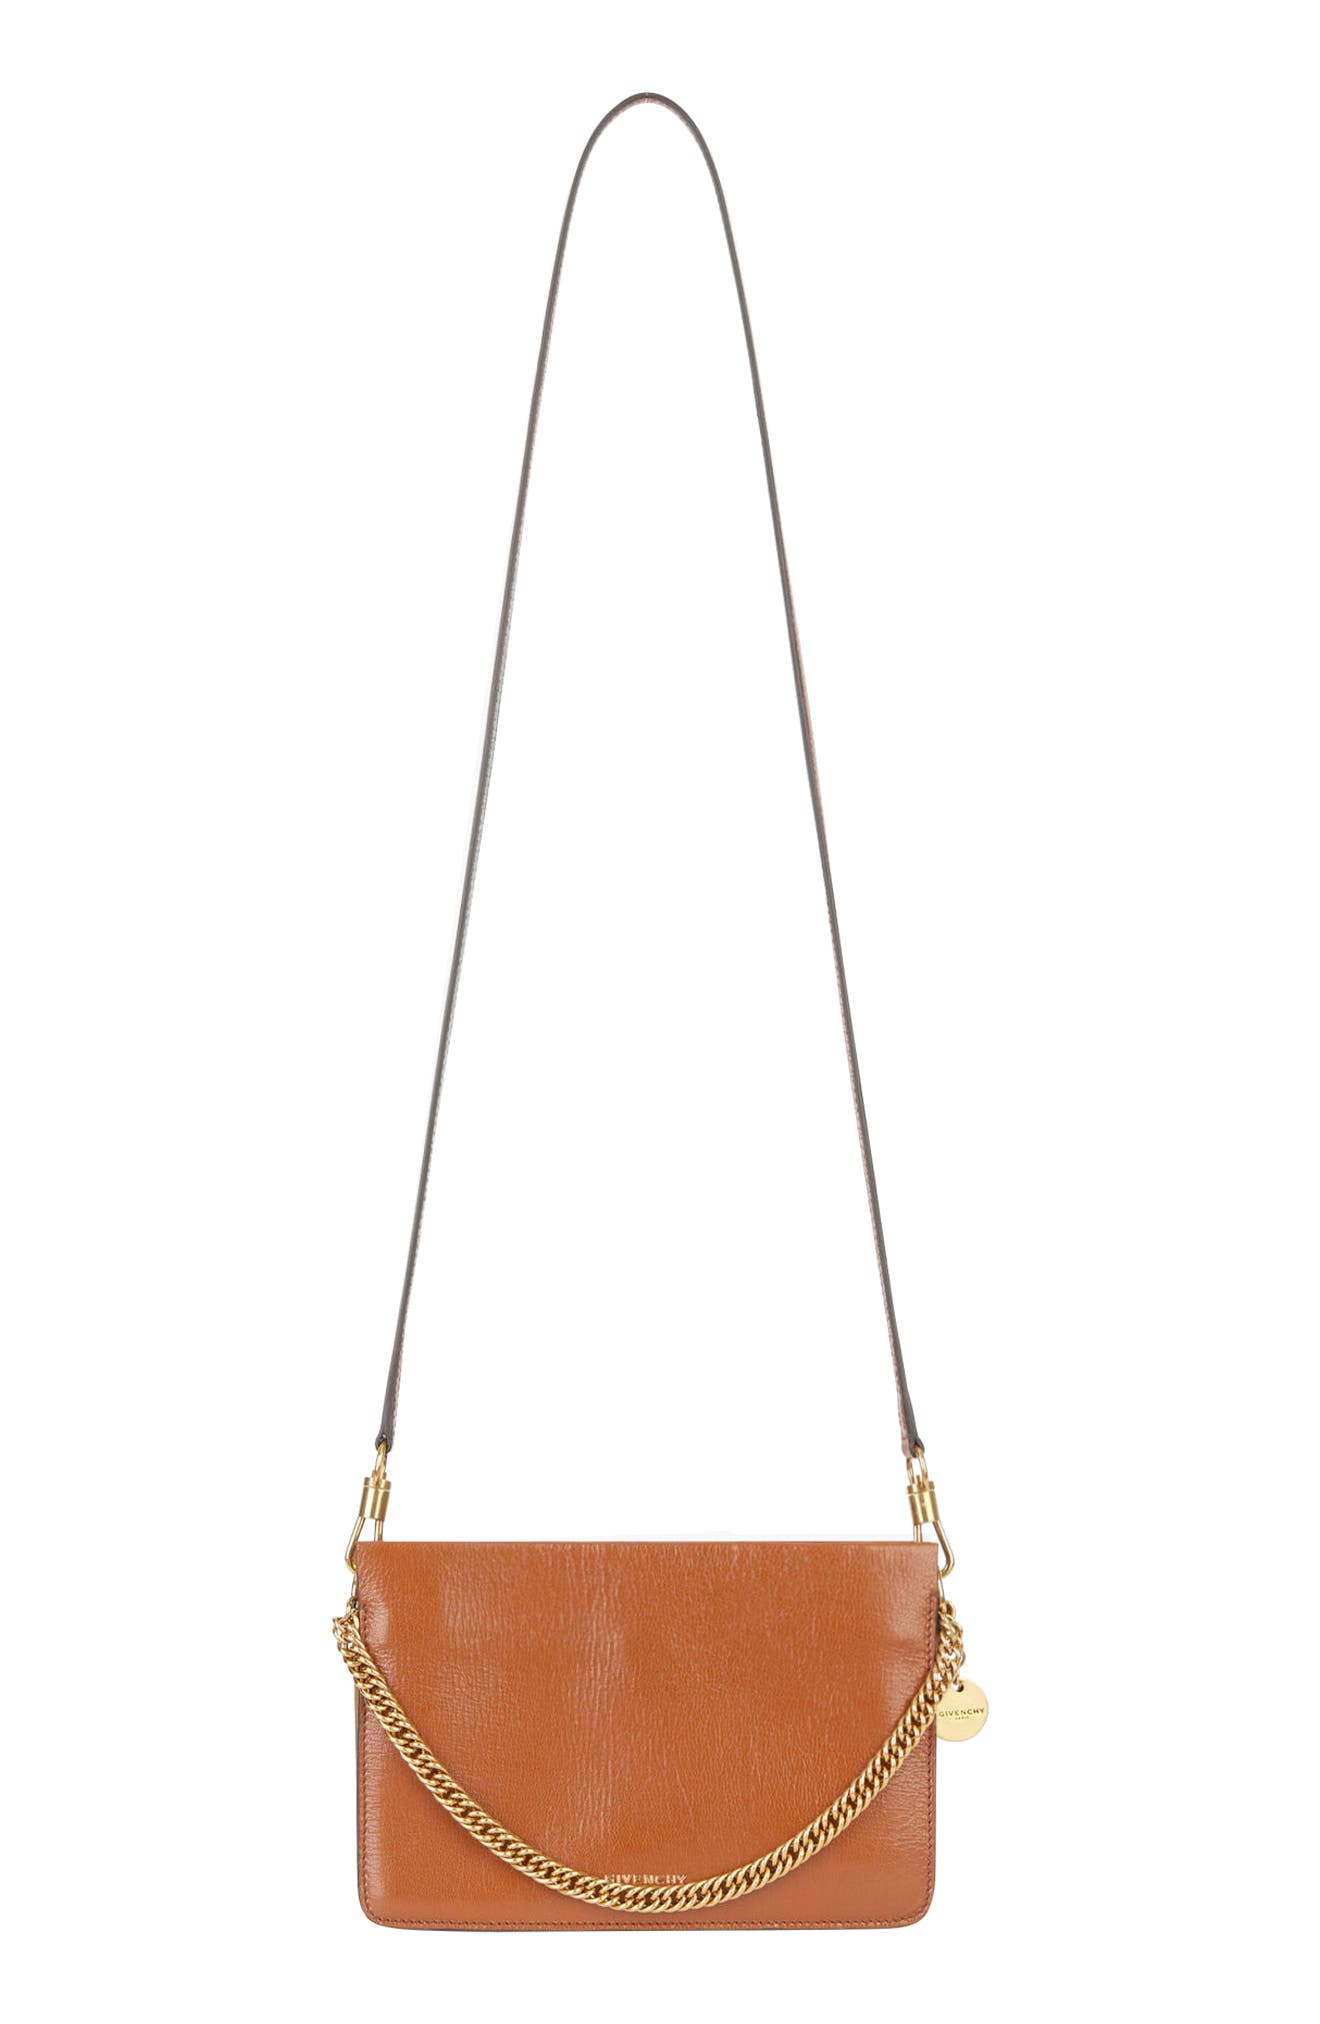 GIVENCHY,                             Cross 3 Leather Crossbody Bag,                             Alternate thumbnail 7, color,                             CHESTNUT